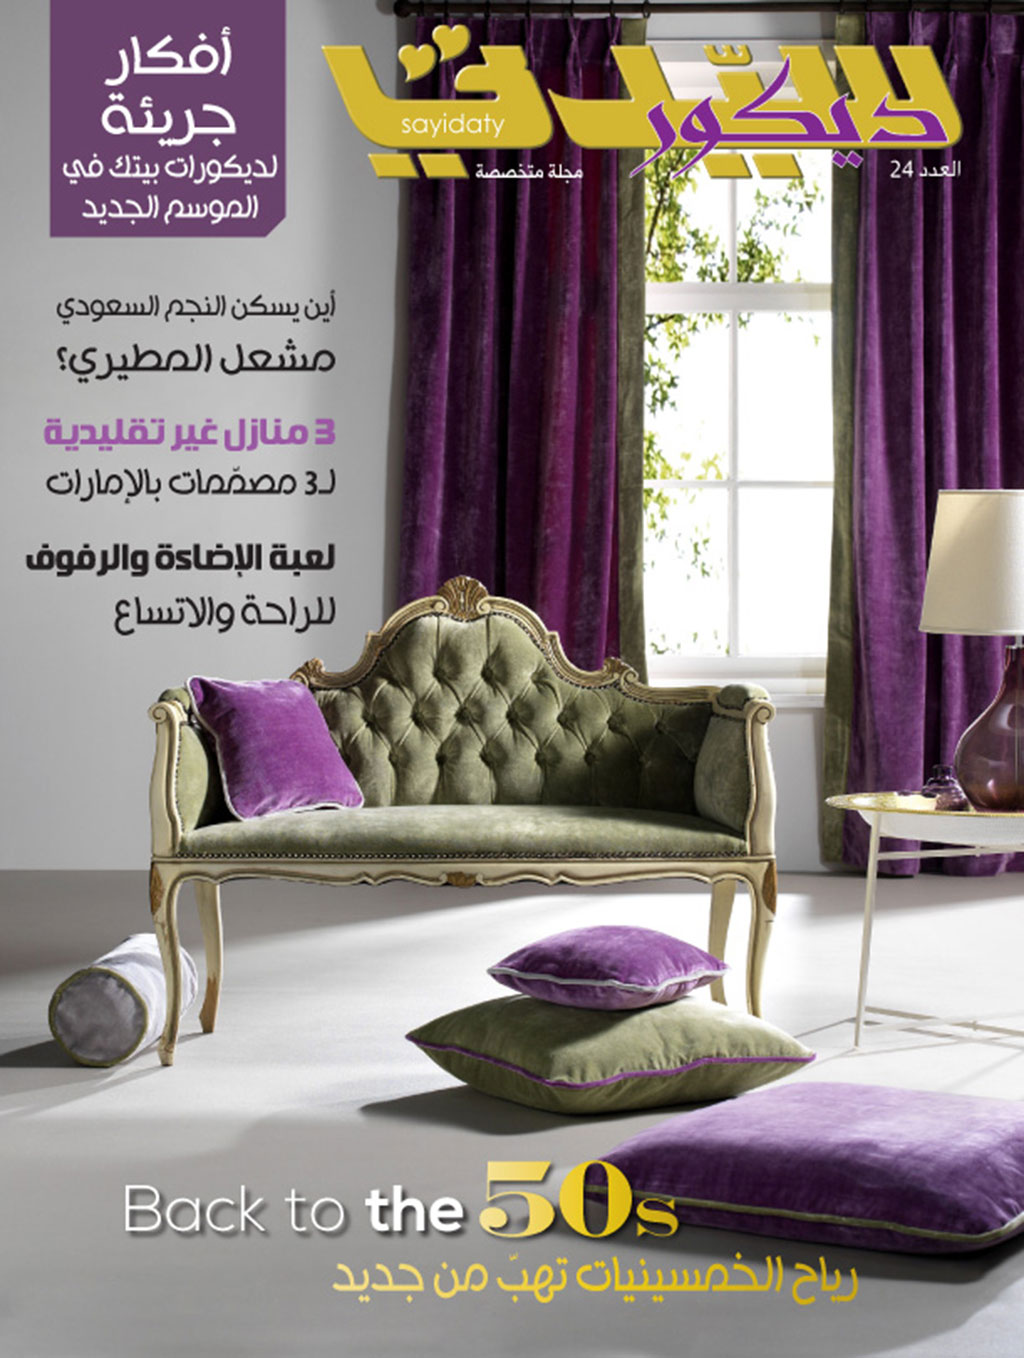 sayidaty dcor magazinelebanon - Decor Magazine